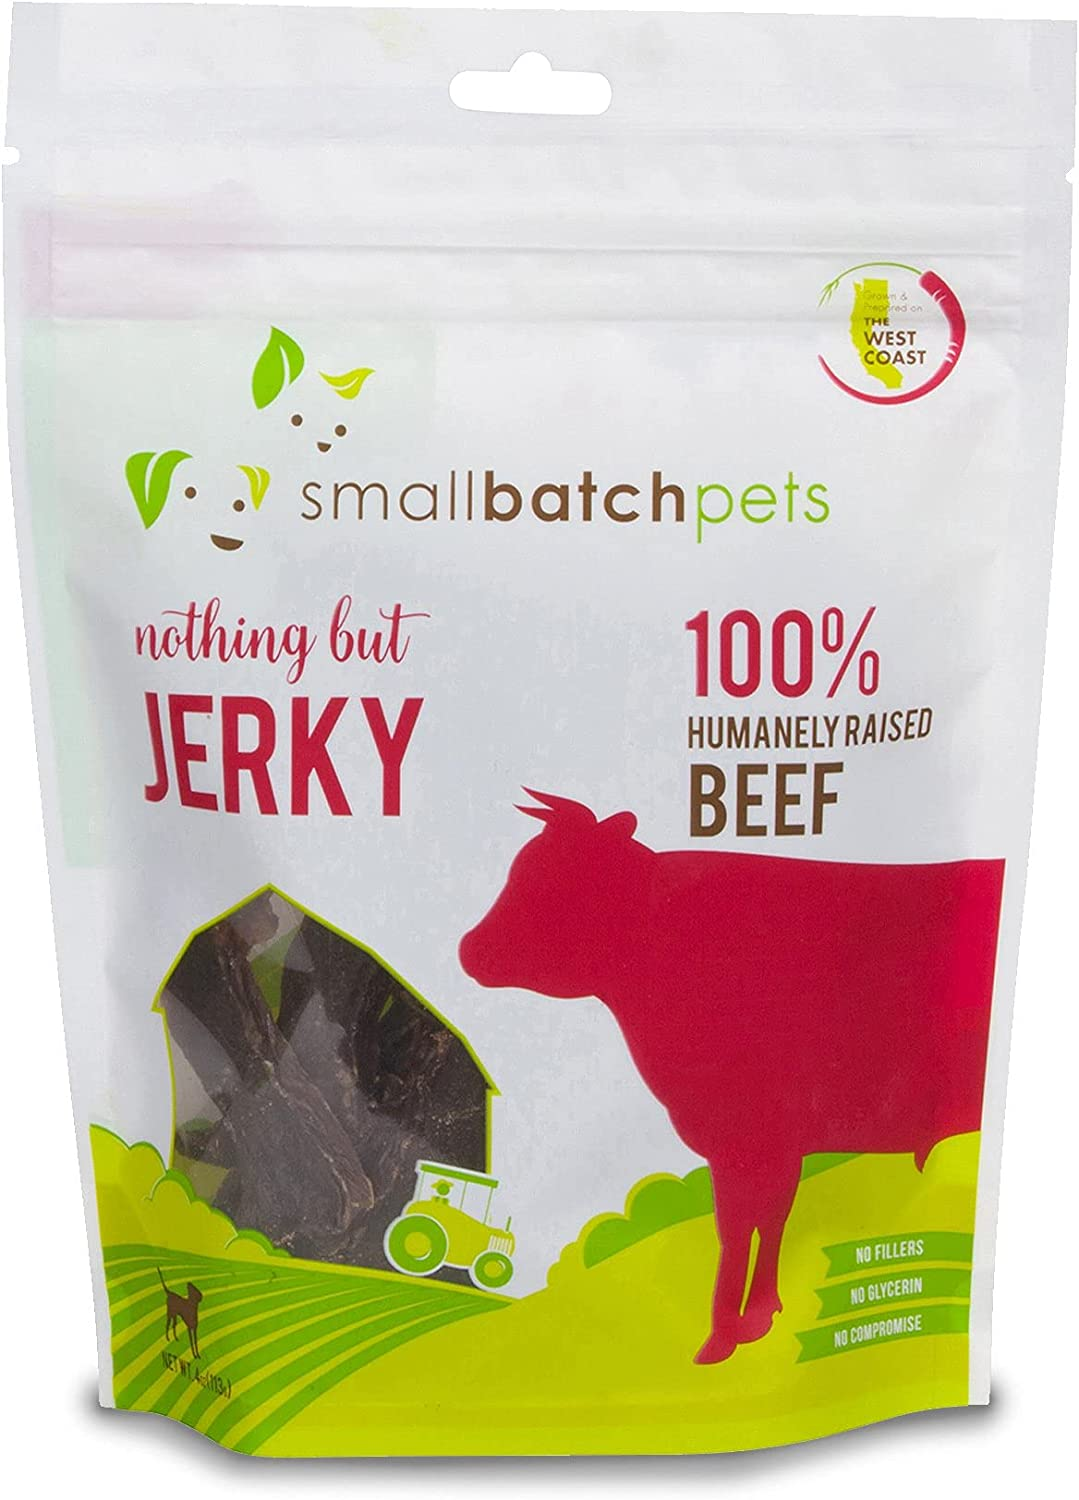 Smallbatch Pets Premium Beef Jerky Treat for Dogs and Cats, 4 oz, Made and Sourced in The USA, Single Ingredient, Humanely Raised Meat, Glycerin Free, Preservative Free, Gently Dehydrated